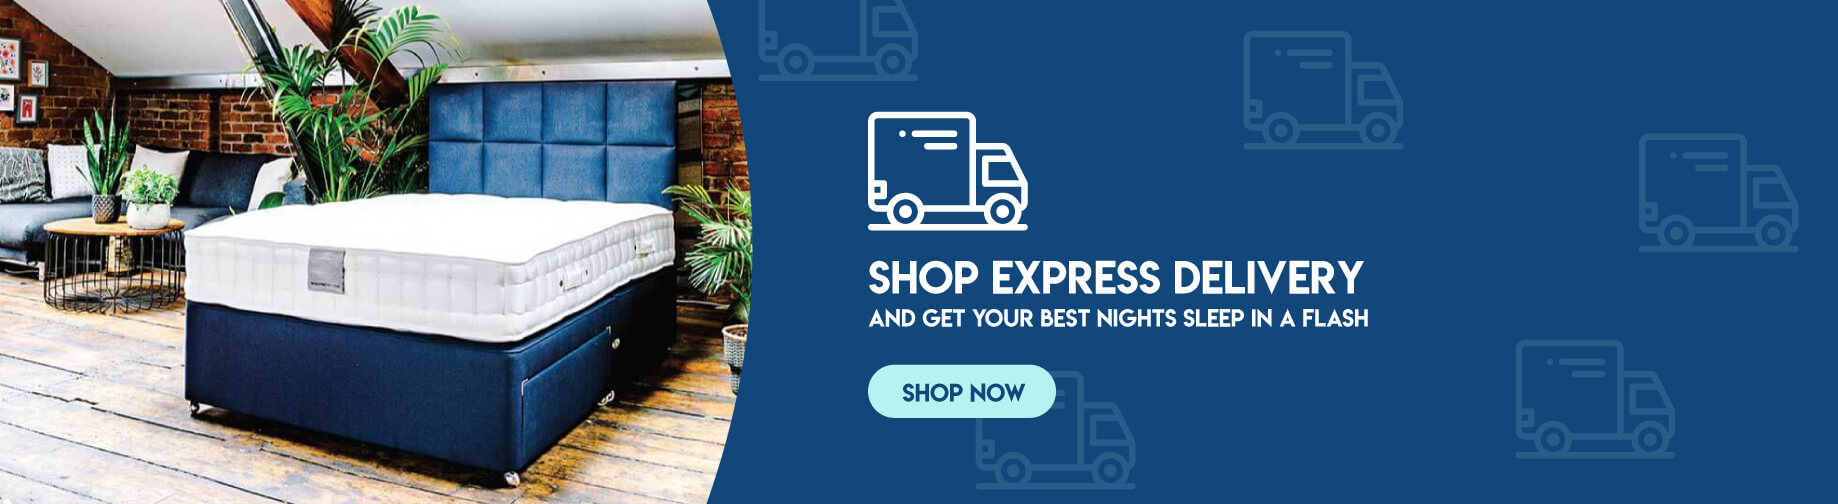 shop-express-delivery